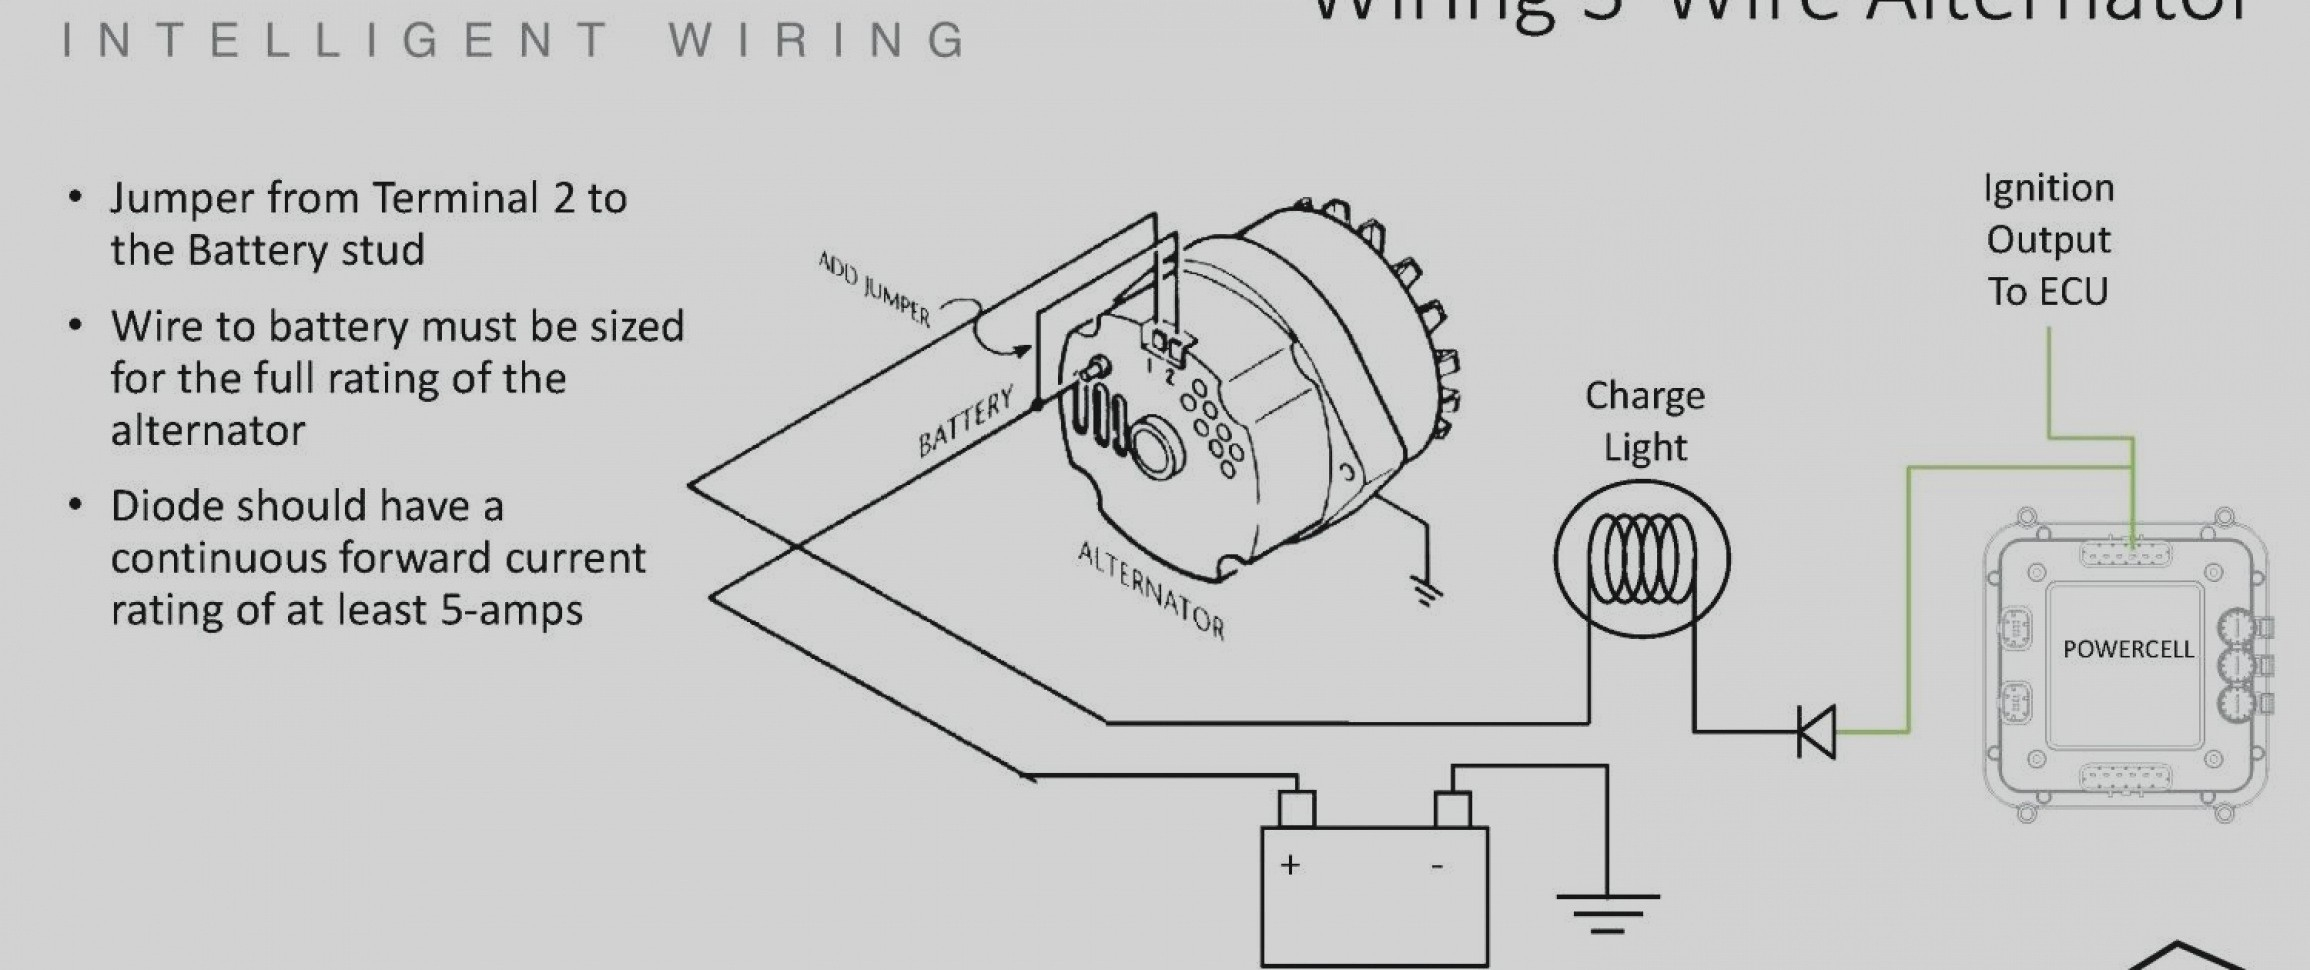 Kubota Voltage Regulator Wiring Diagram | Wiring Diagram - Kubota Voltage Regulator Wiring Diagram